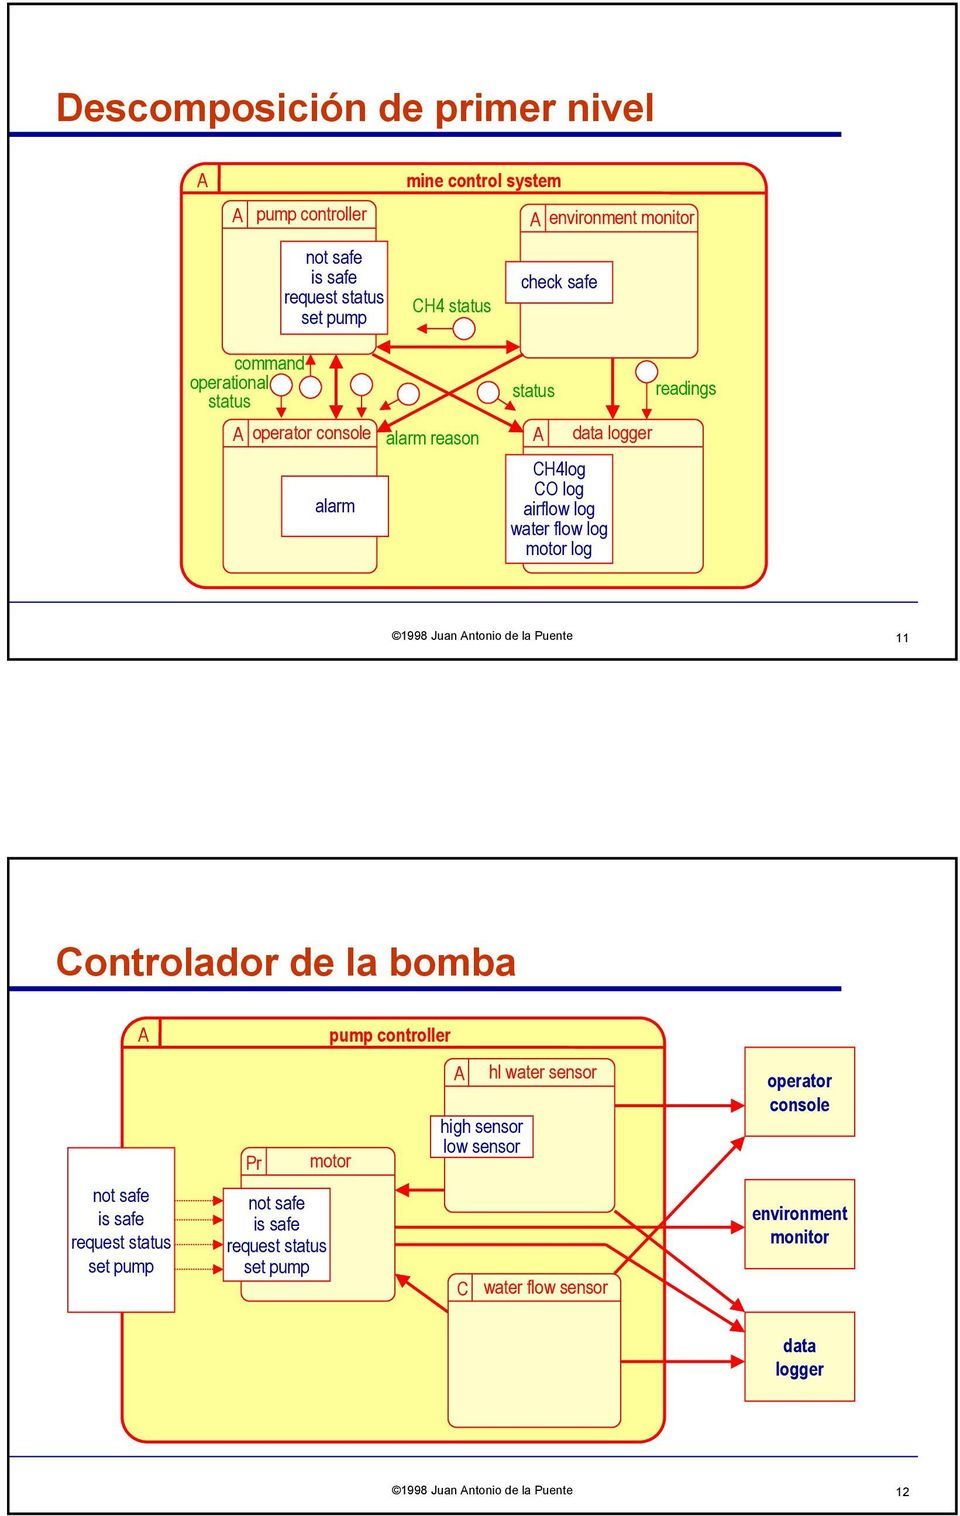 log readings 1998 Juan Antonio de la Puente 11 Controlador de la bomba A not safe is safe request status set pump Pr motor not safe is safe